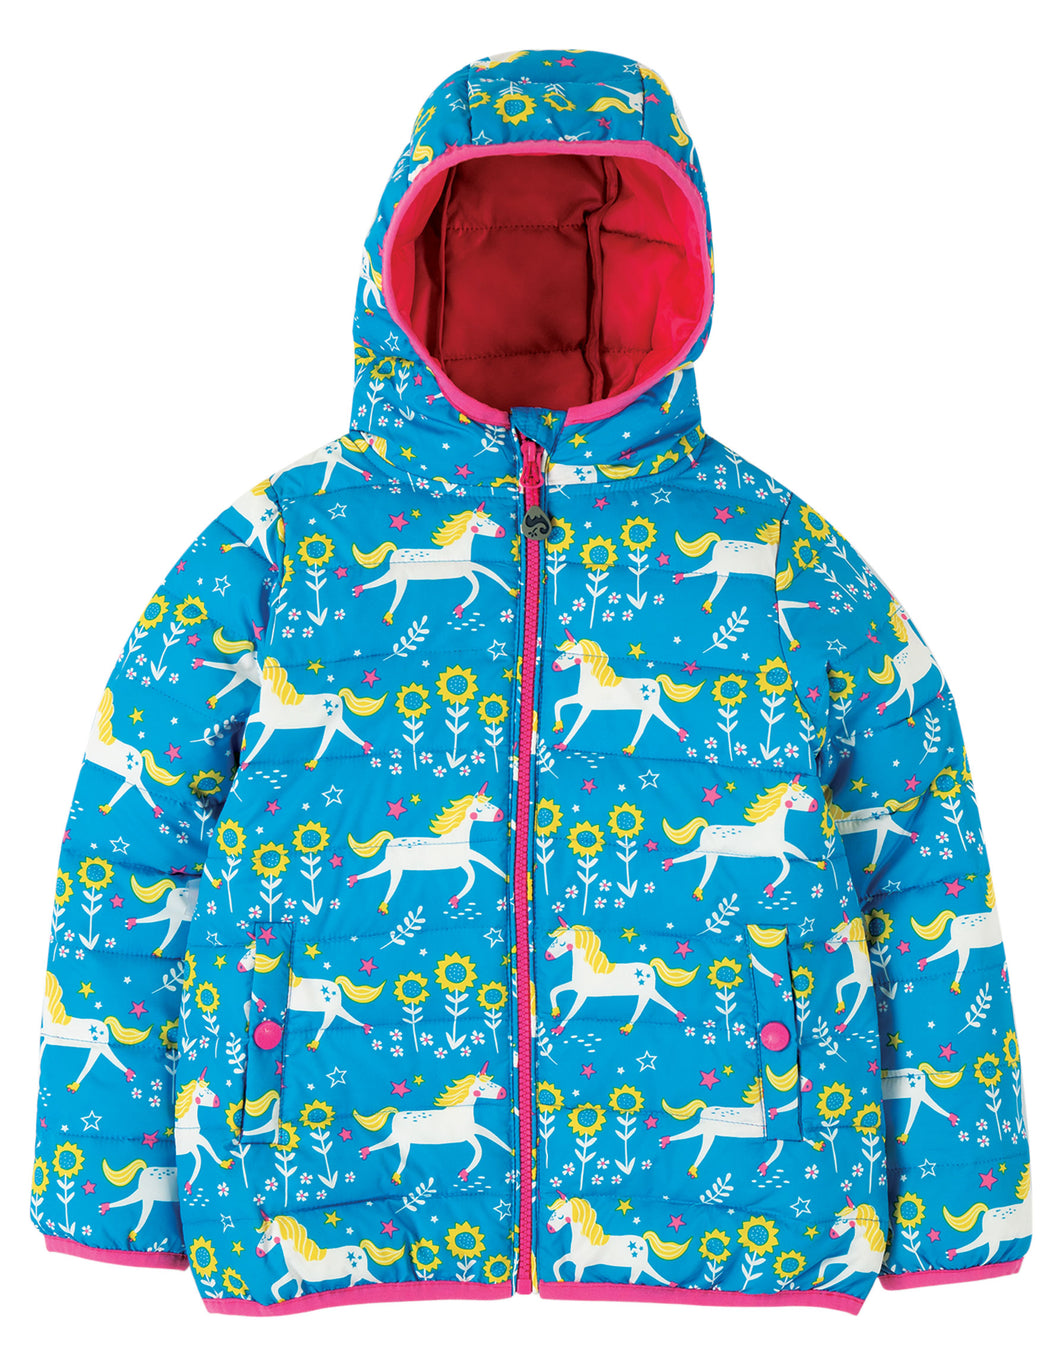 frugi quilted jacket in blue unicorn print